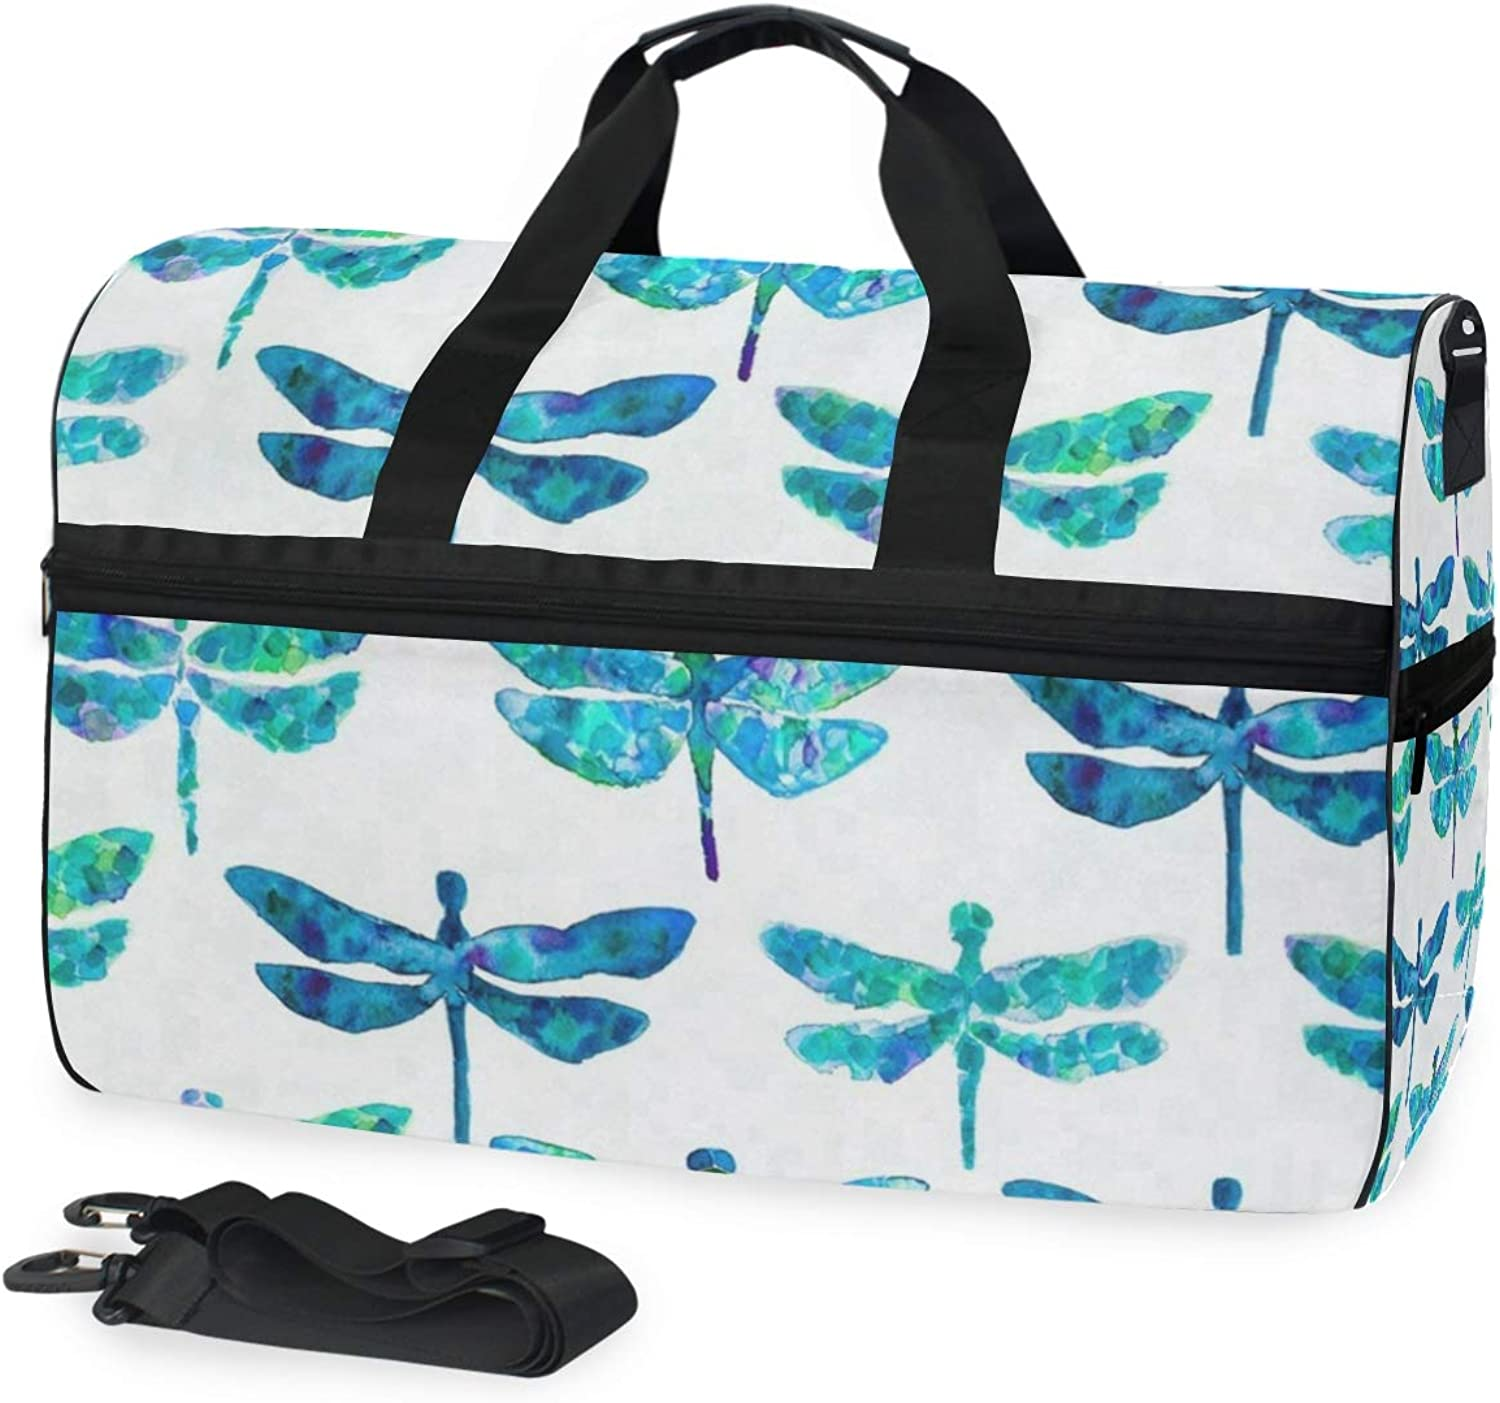 3b8d62aaa93913 Watercolor Butterflies Sports Gym Bag with shoes Compartment Travel Duffel  Bag for Men Women norvcr4718-Sporting goods